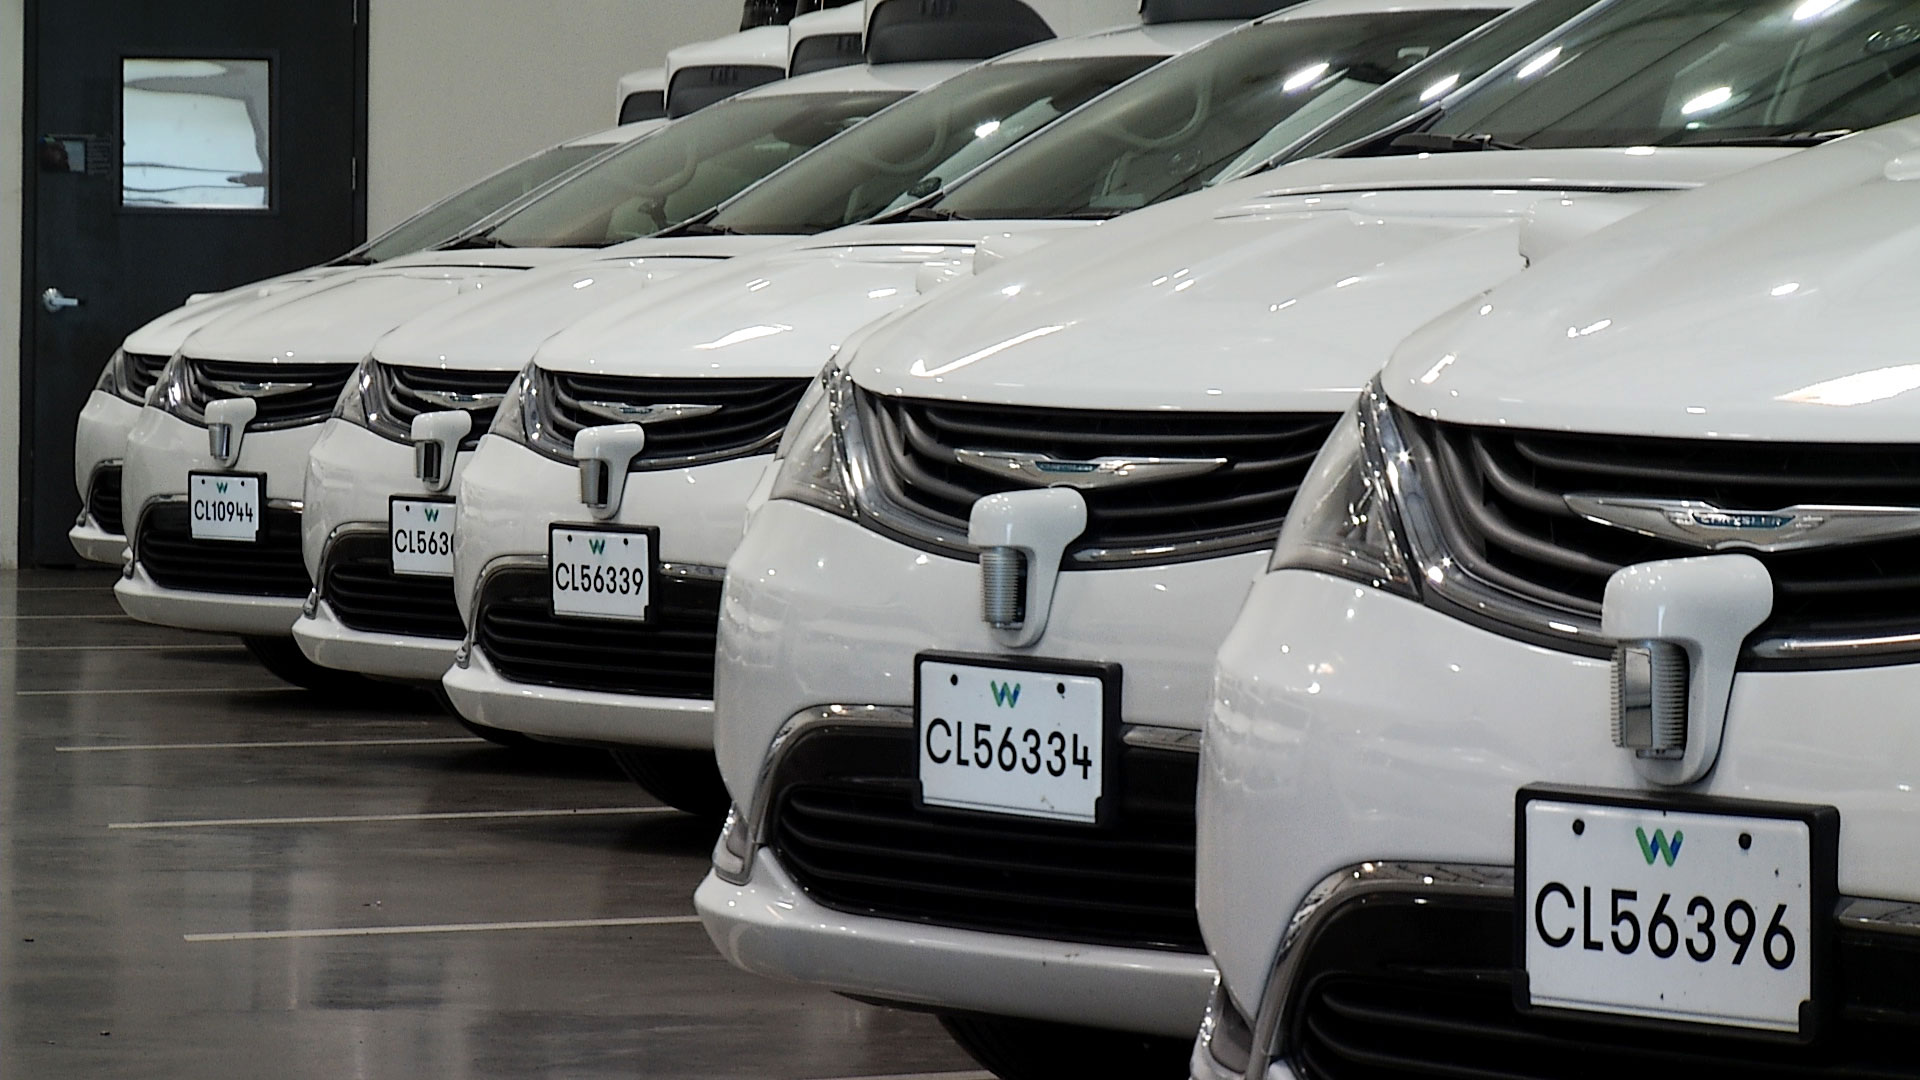 A row of vehicles outfitted with Waymo's self-driving technology sit parked in the company's depot in Chandler, Arizona.